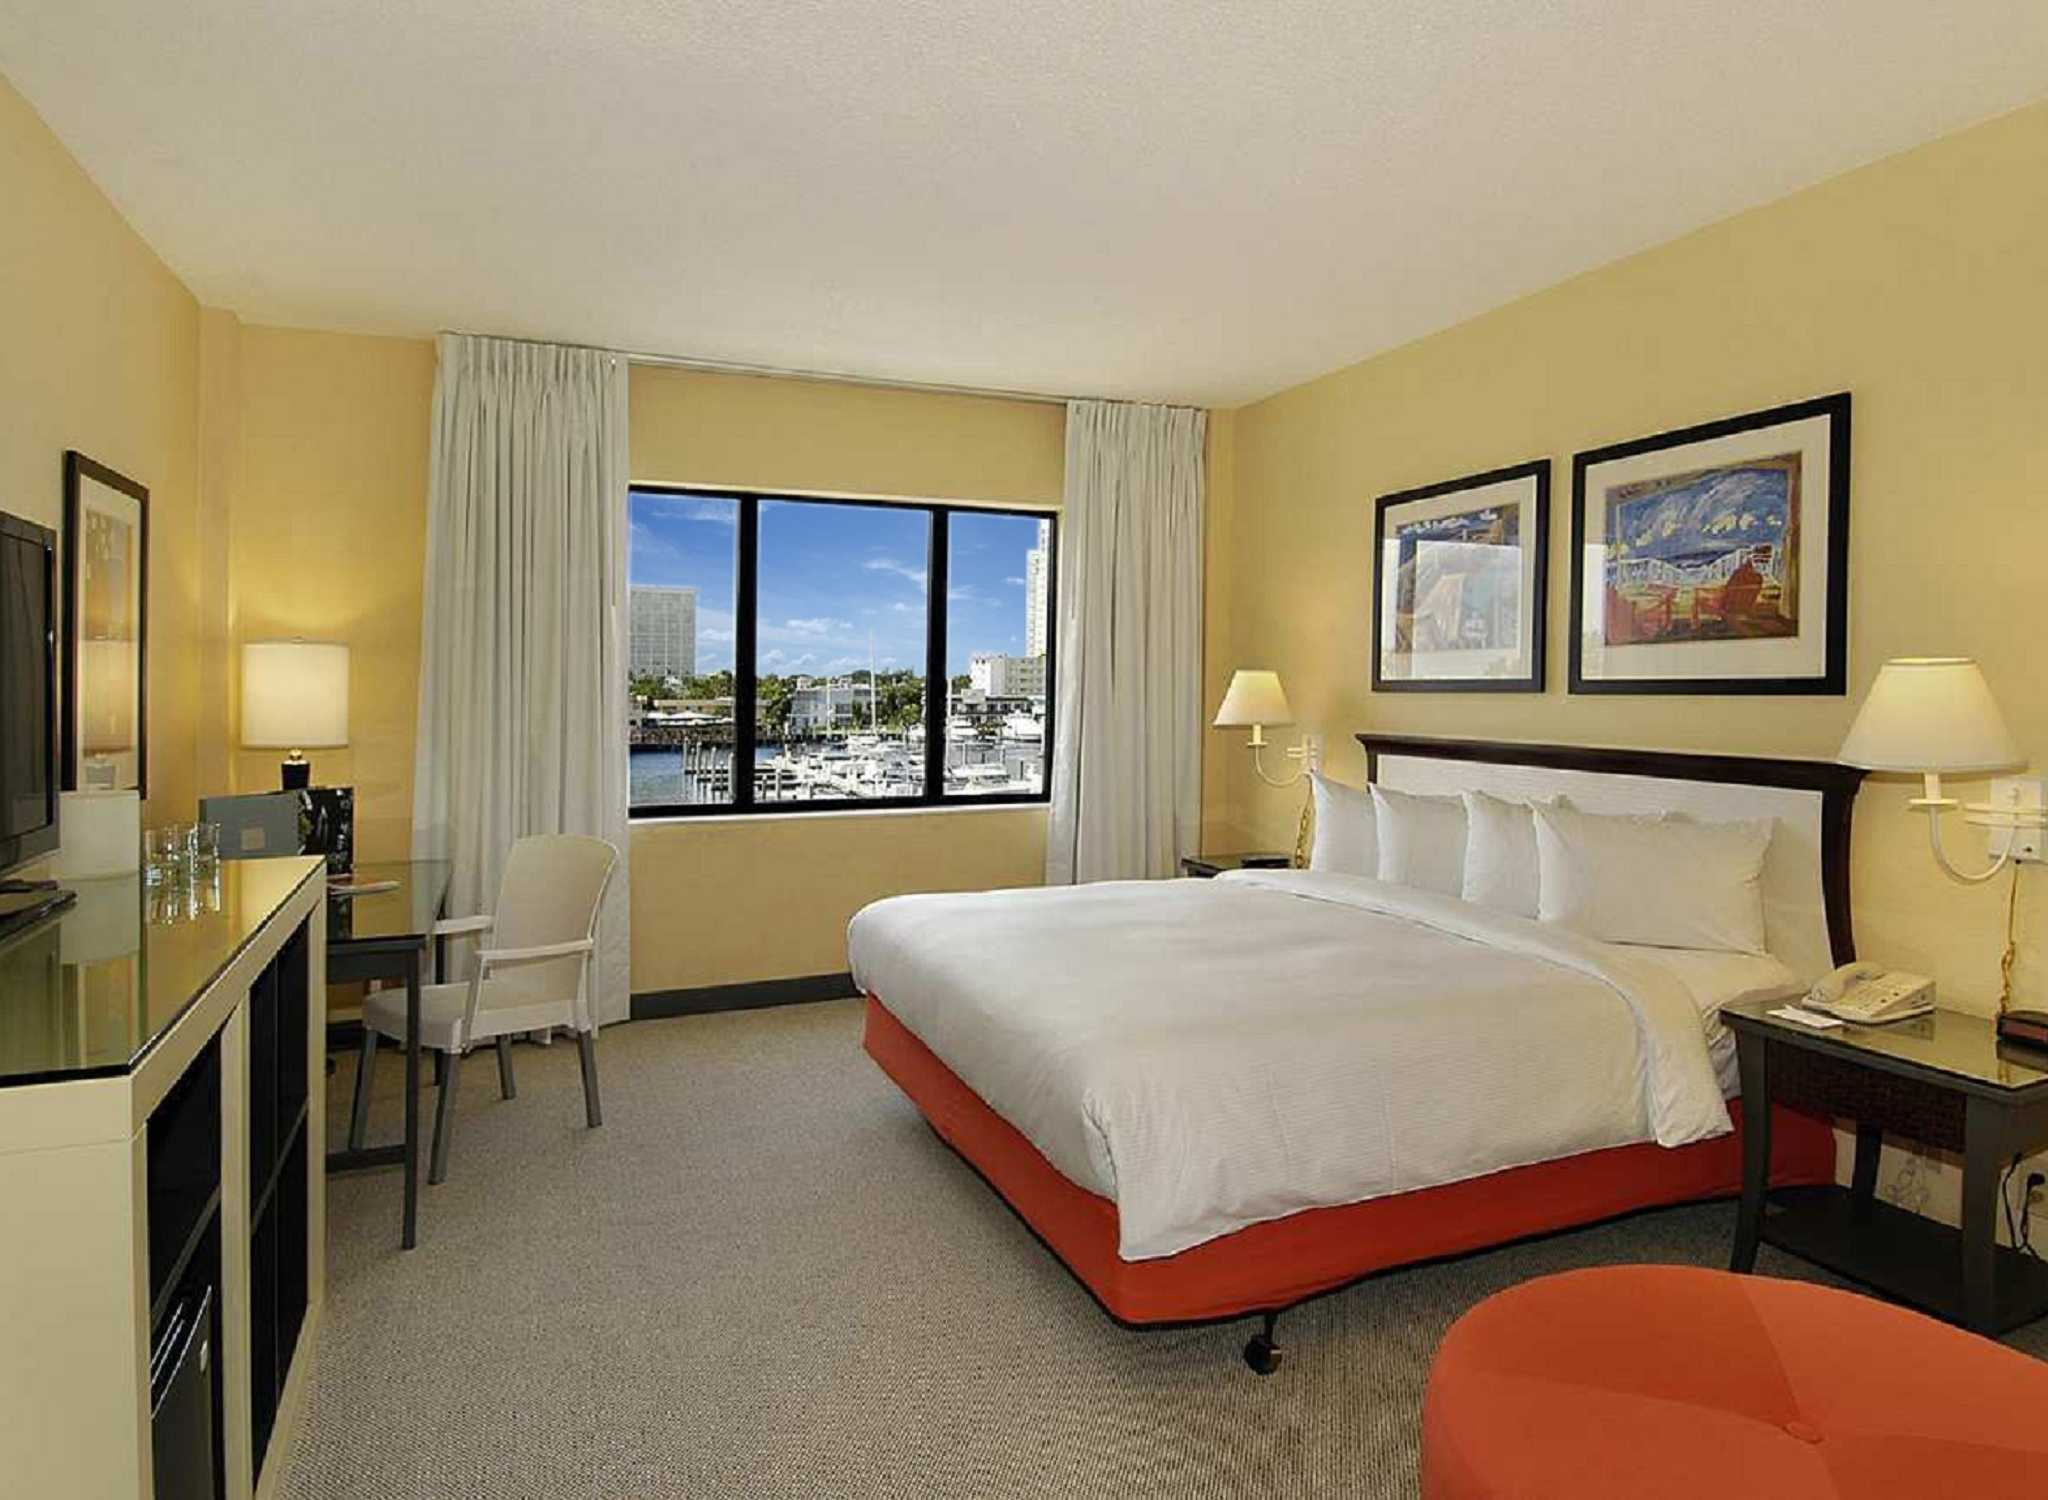 Bahia Mar Fort Lauderdale Beach   A DoubleTree By Hilton Hotel, USA U2013  Zimmer Mit